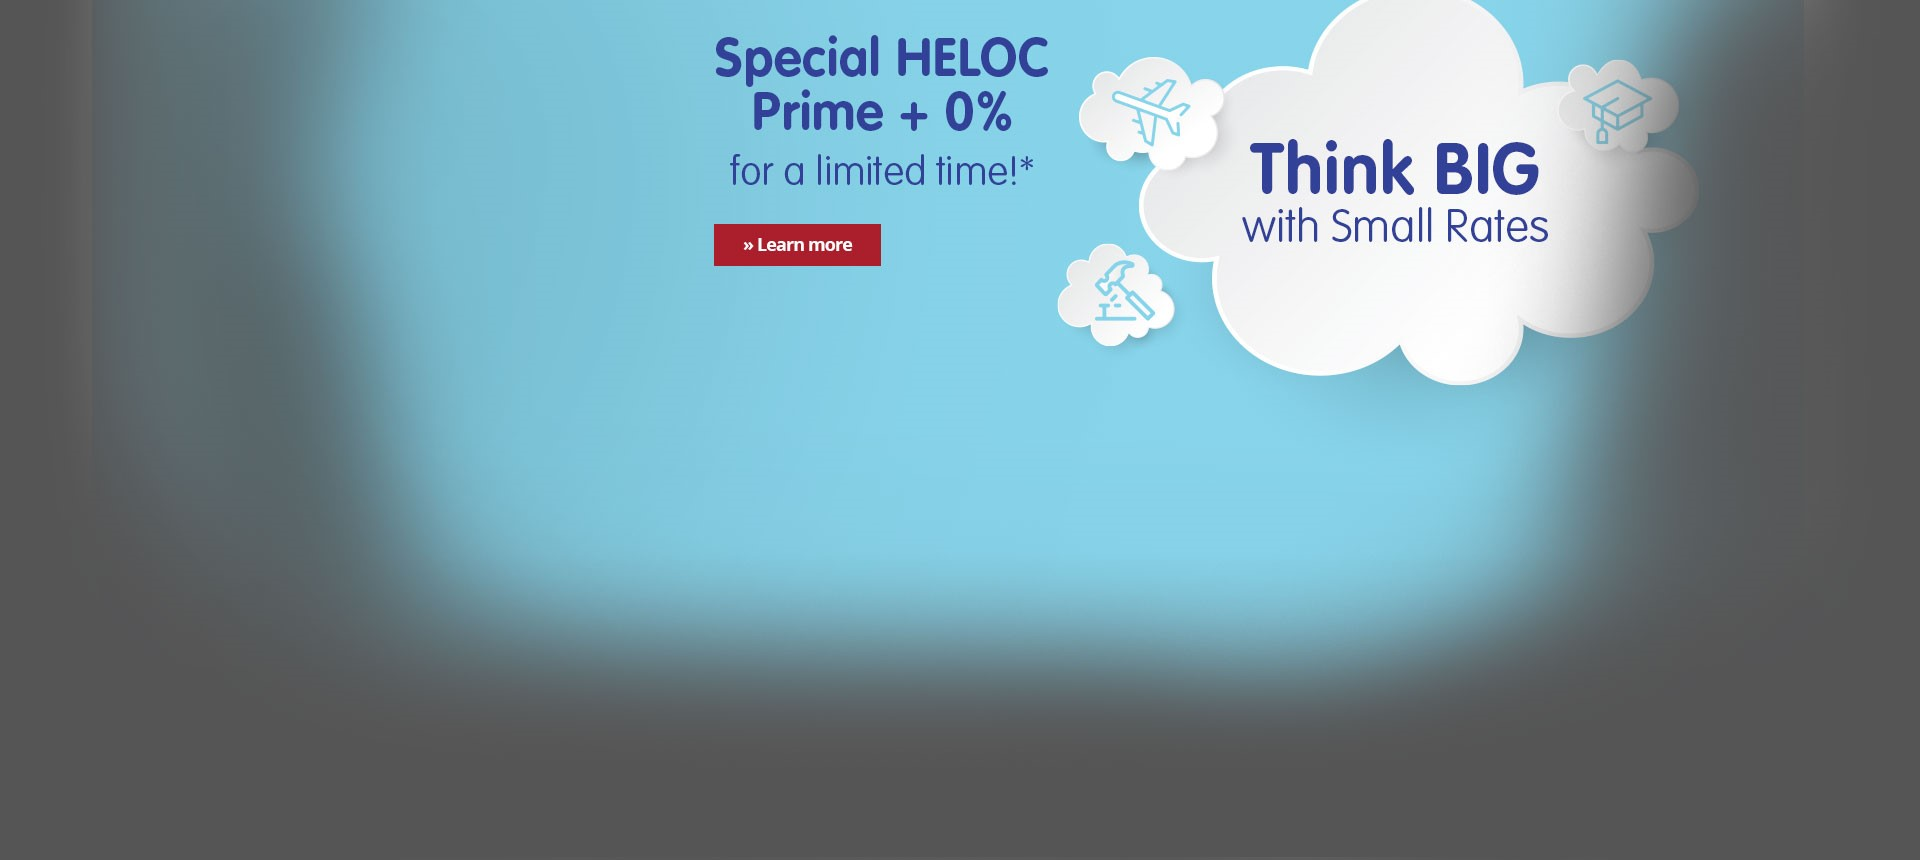 HELOC Intro Rate Prime + 0% for a Limited Time!